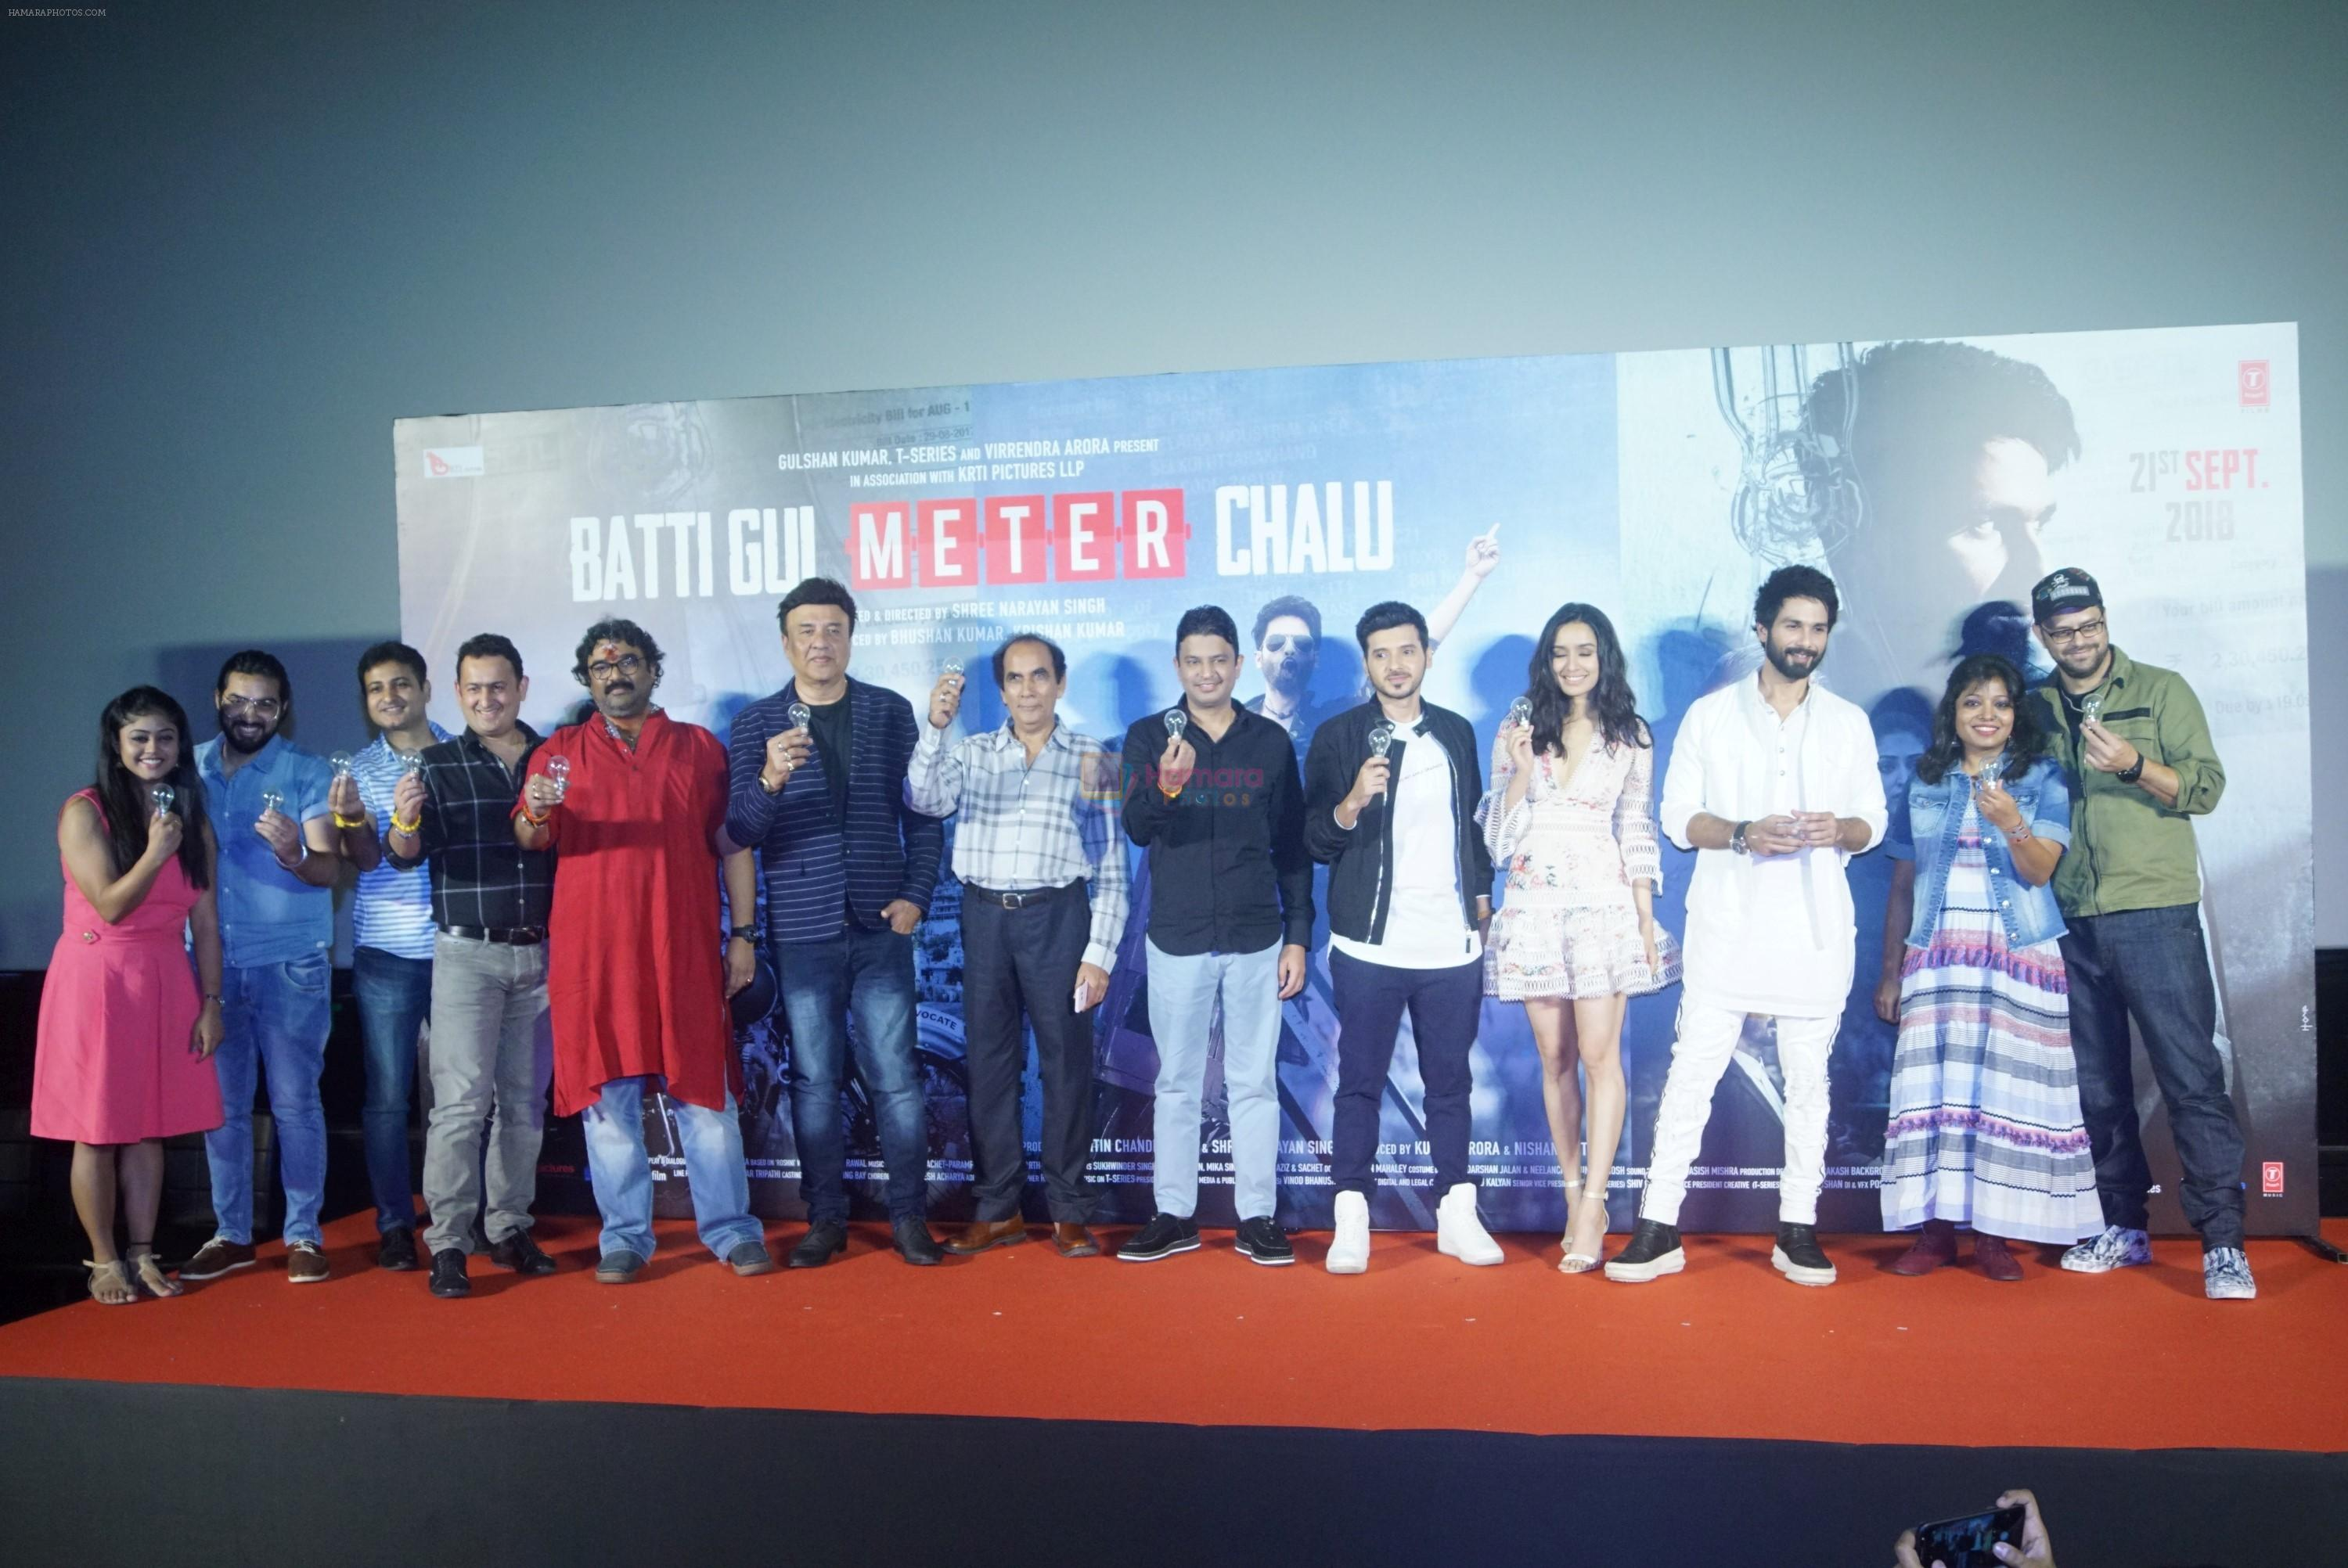 Shraddha Kapoor, Shahid Kapoor,Divyendu Sharma, Shree Narayan Singh, Bhushan Kumar, Anu Malik at the trailer launch of film Batti Gul Meter Chalu on 10th Aug 2018